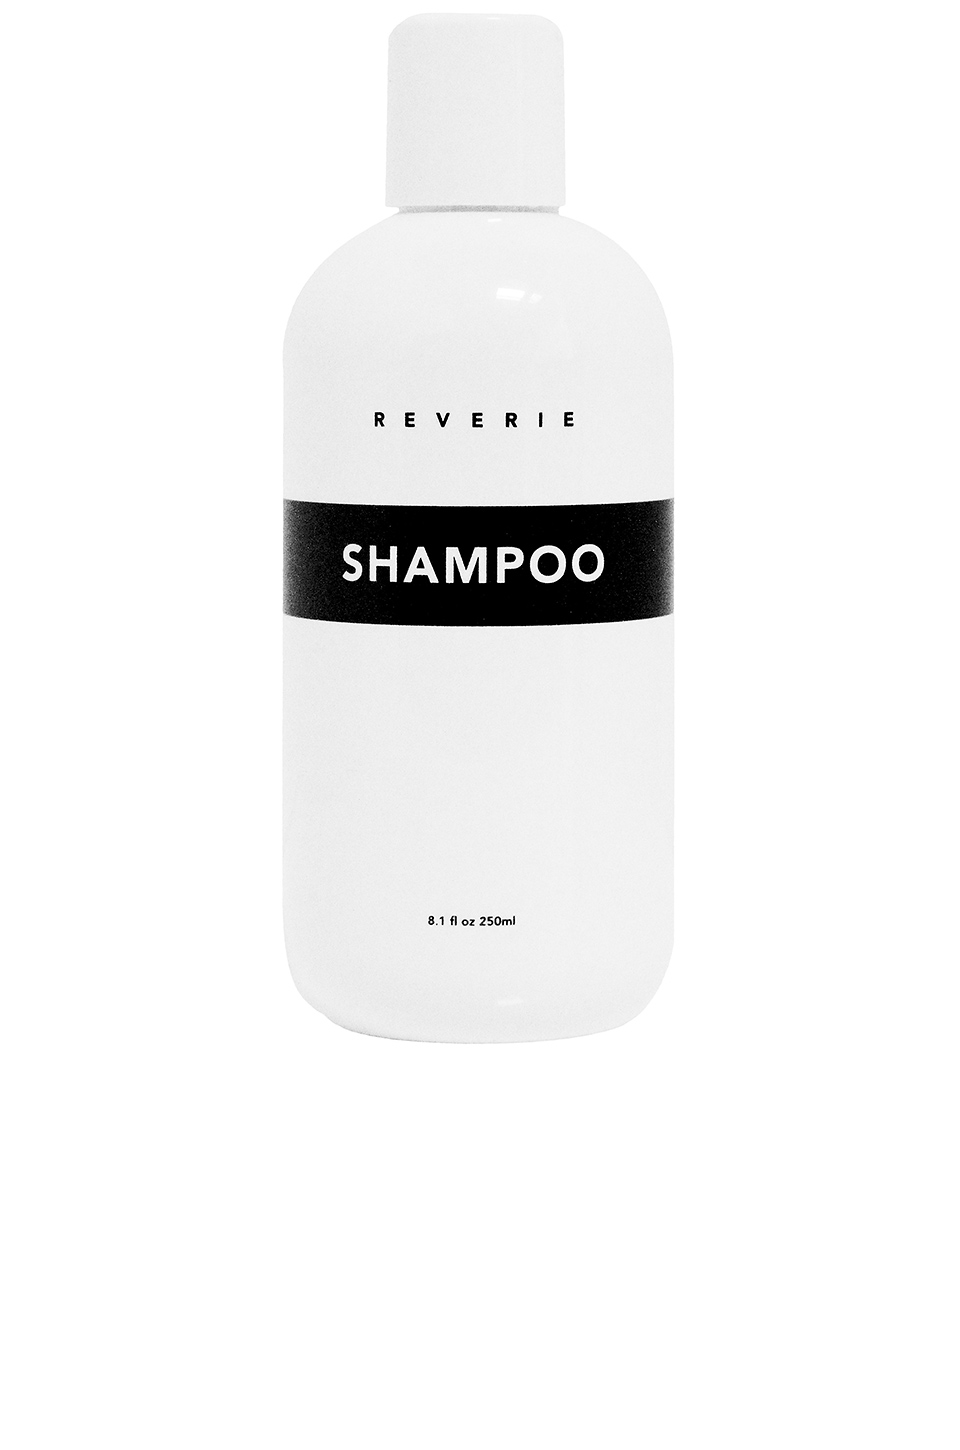 REVERIE Shampoo in